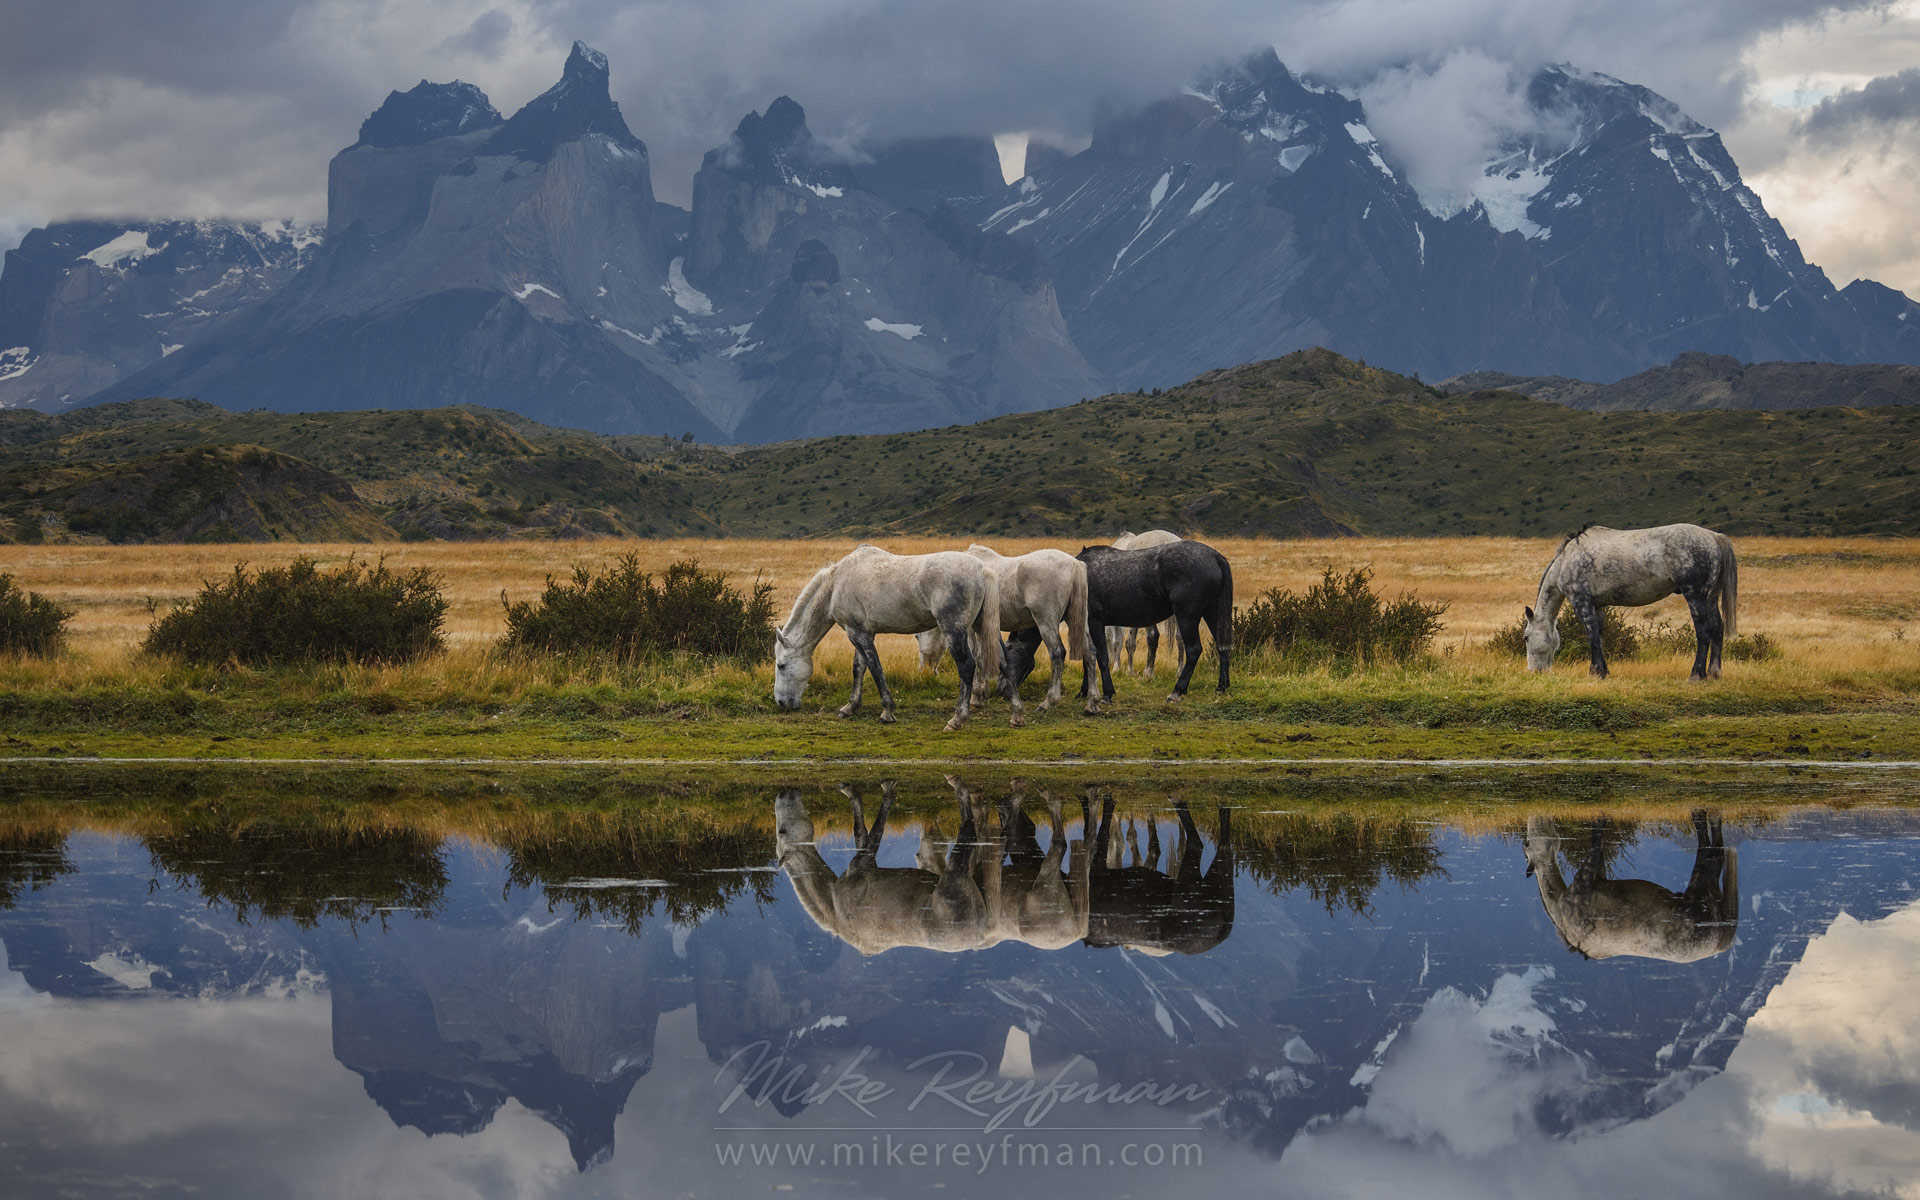 Horses are grazing on the beautiful background of Patagonian Andes. Torres del Paine National Park, Ultima Esperanza Province, Magallanes and Antartica Chilena Region XII, Patagonia, Chile. - Patagonia-Wildlife-and-Horses - Mike Reyfman Photography